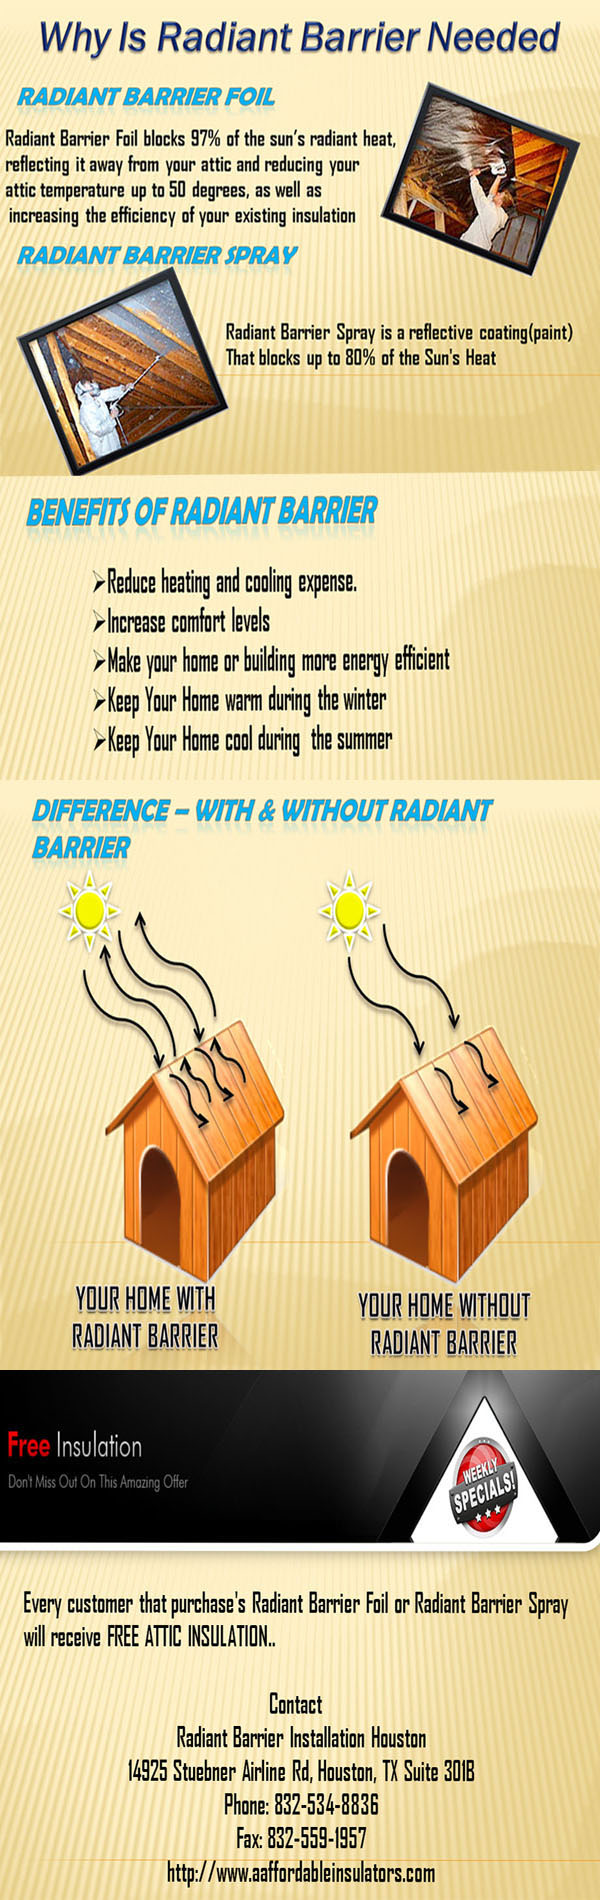 Information About Radiant Barrier Foil And Radiant Barrier Spray Radiant Barrier Foil Reduces 97 Of The Sun S Radiant Barrier Radiant Heat Energy Efficiency